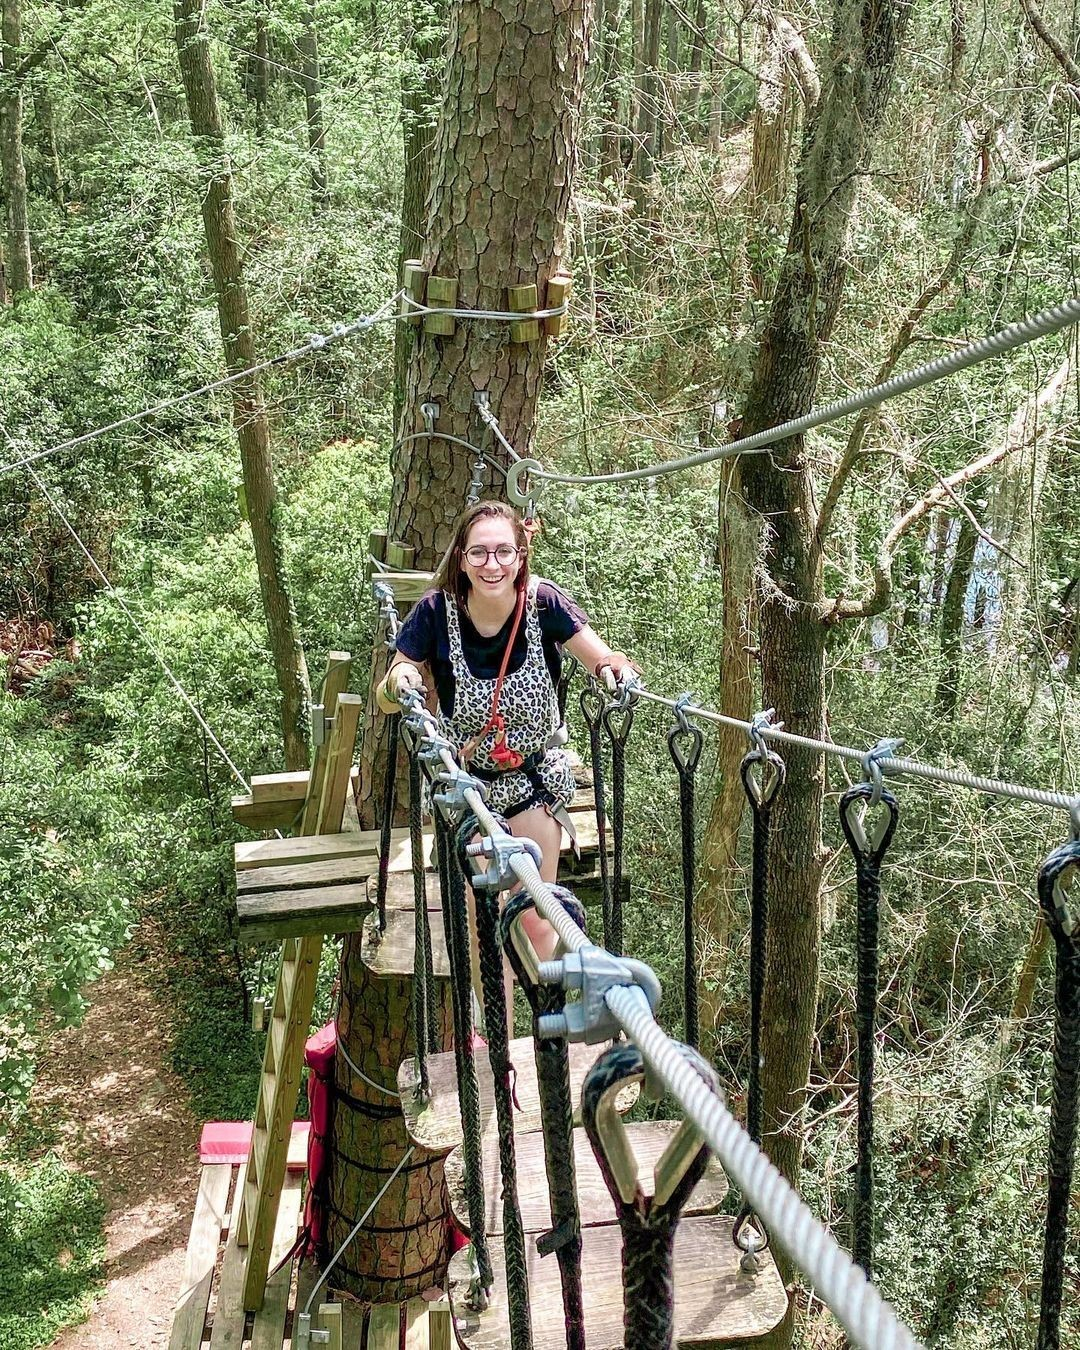 Step-by-step, you'll make it through each obstacle of our Tree to Tree Aerial Adventure Course! Are you ready to conquer…